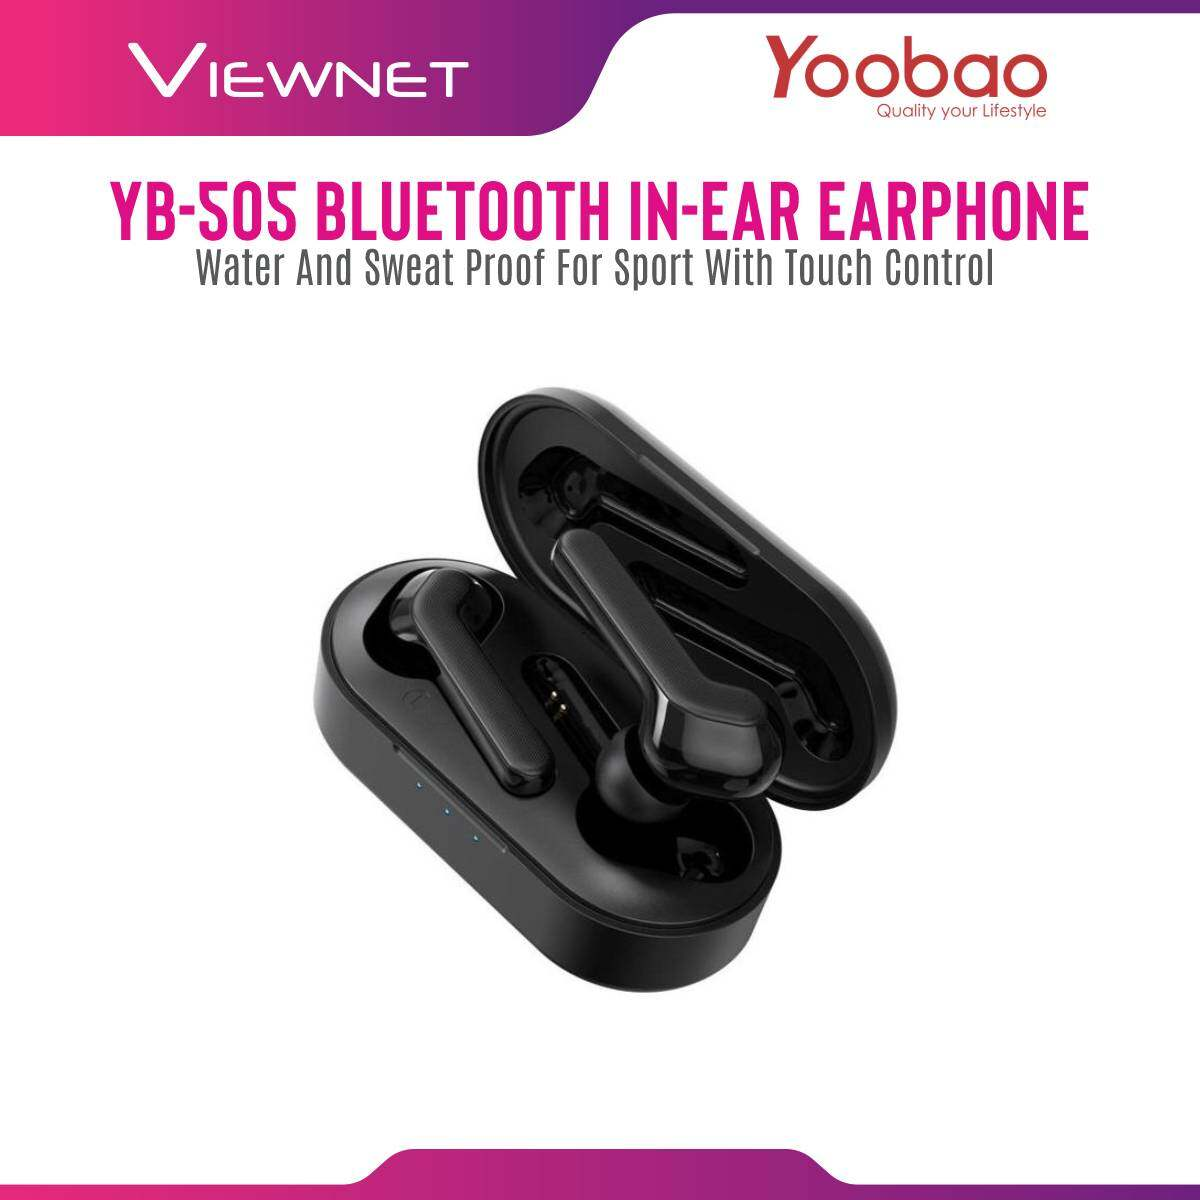 Yoobao YB-505 TWS Hi-Fi Stereo Wireless Bluetooth In-ear Earphone Water and Sweat Proof for Sport with Touch Control